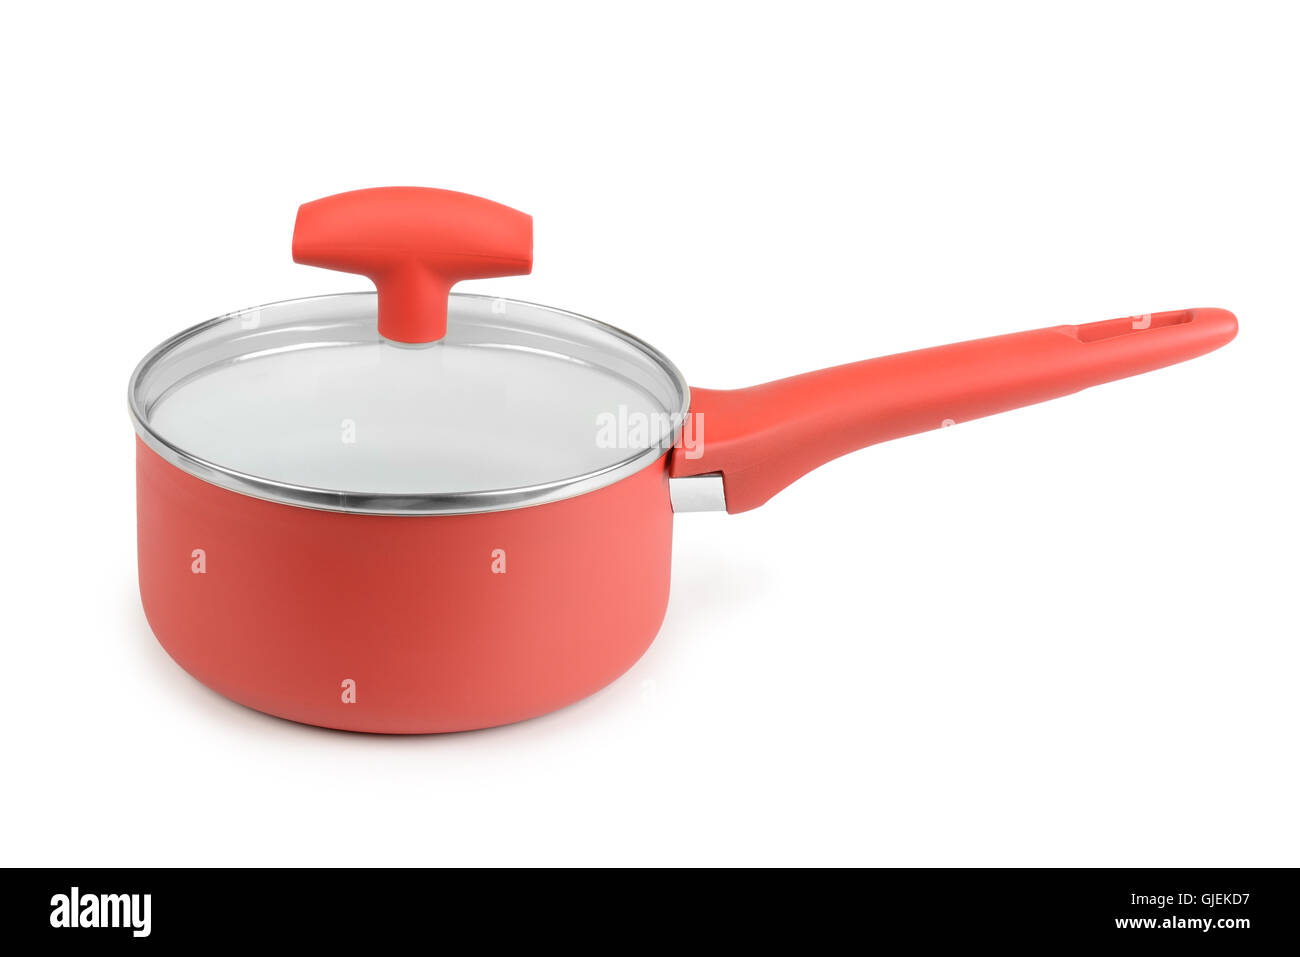 Red saucepan isolated on white background - Stock Image